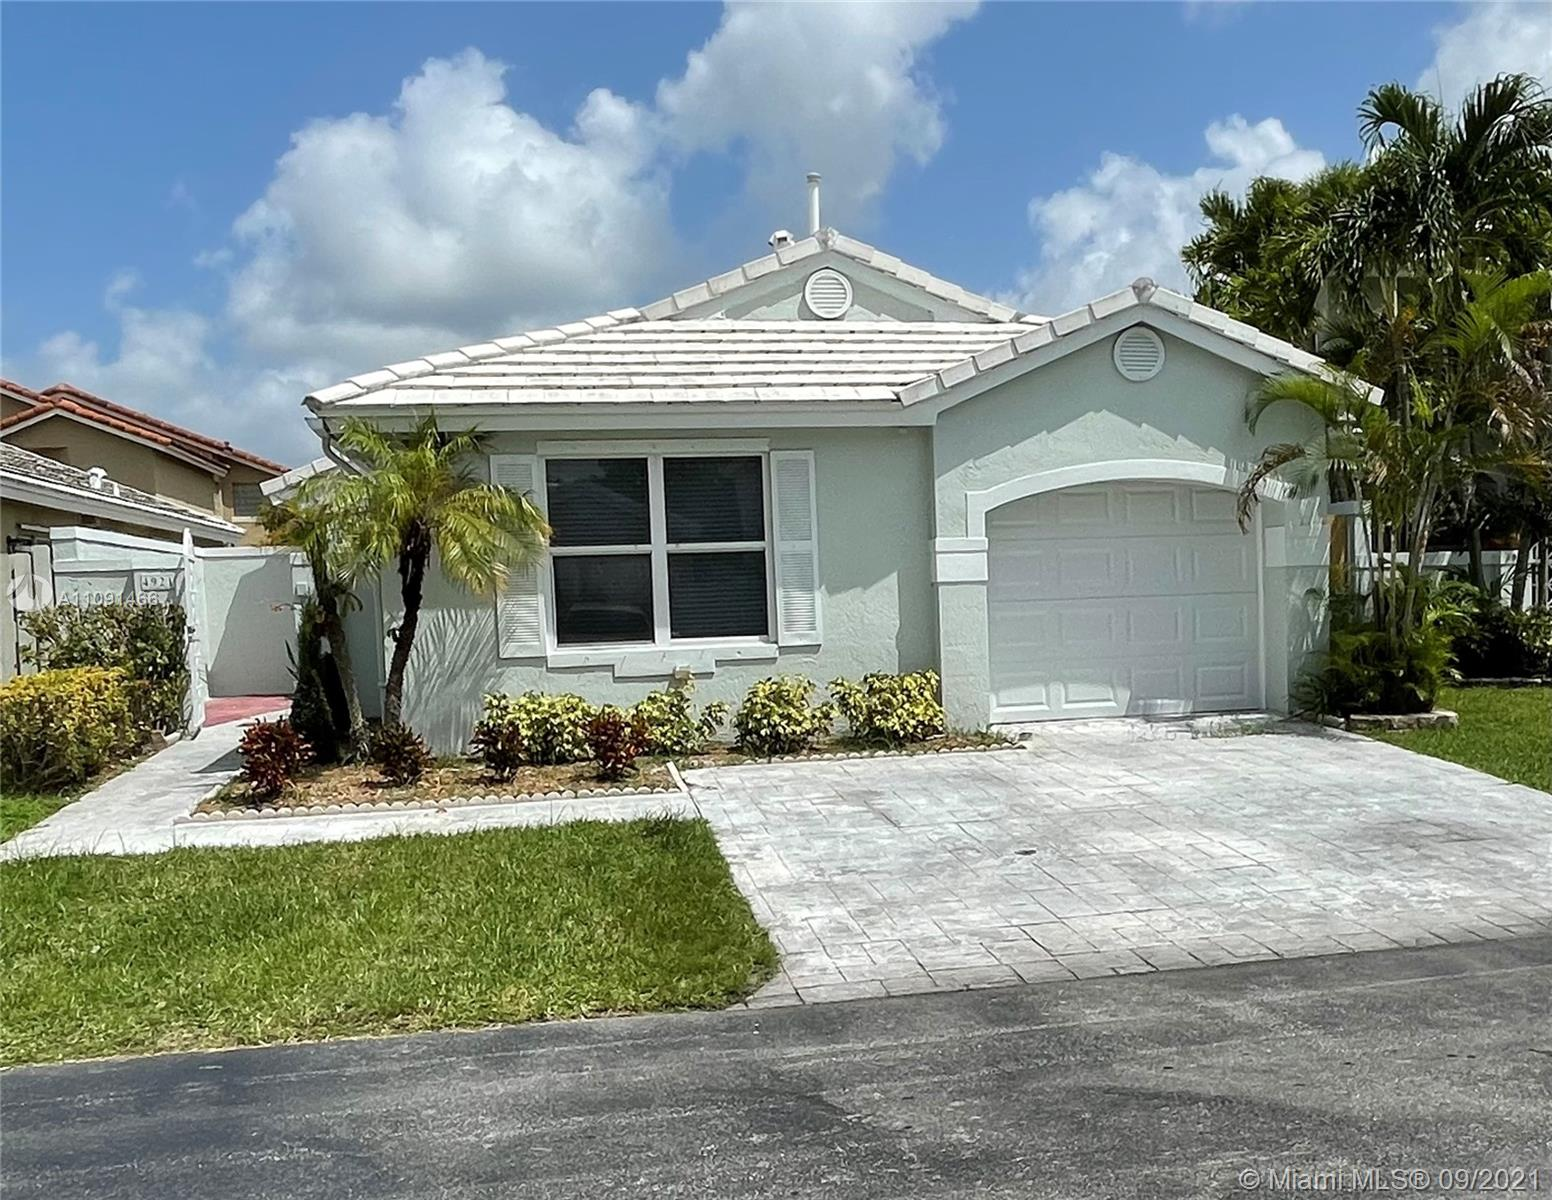 Lakes Of The Meadow - 4921 SW 154th Pl, Miami, FL 33185